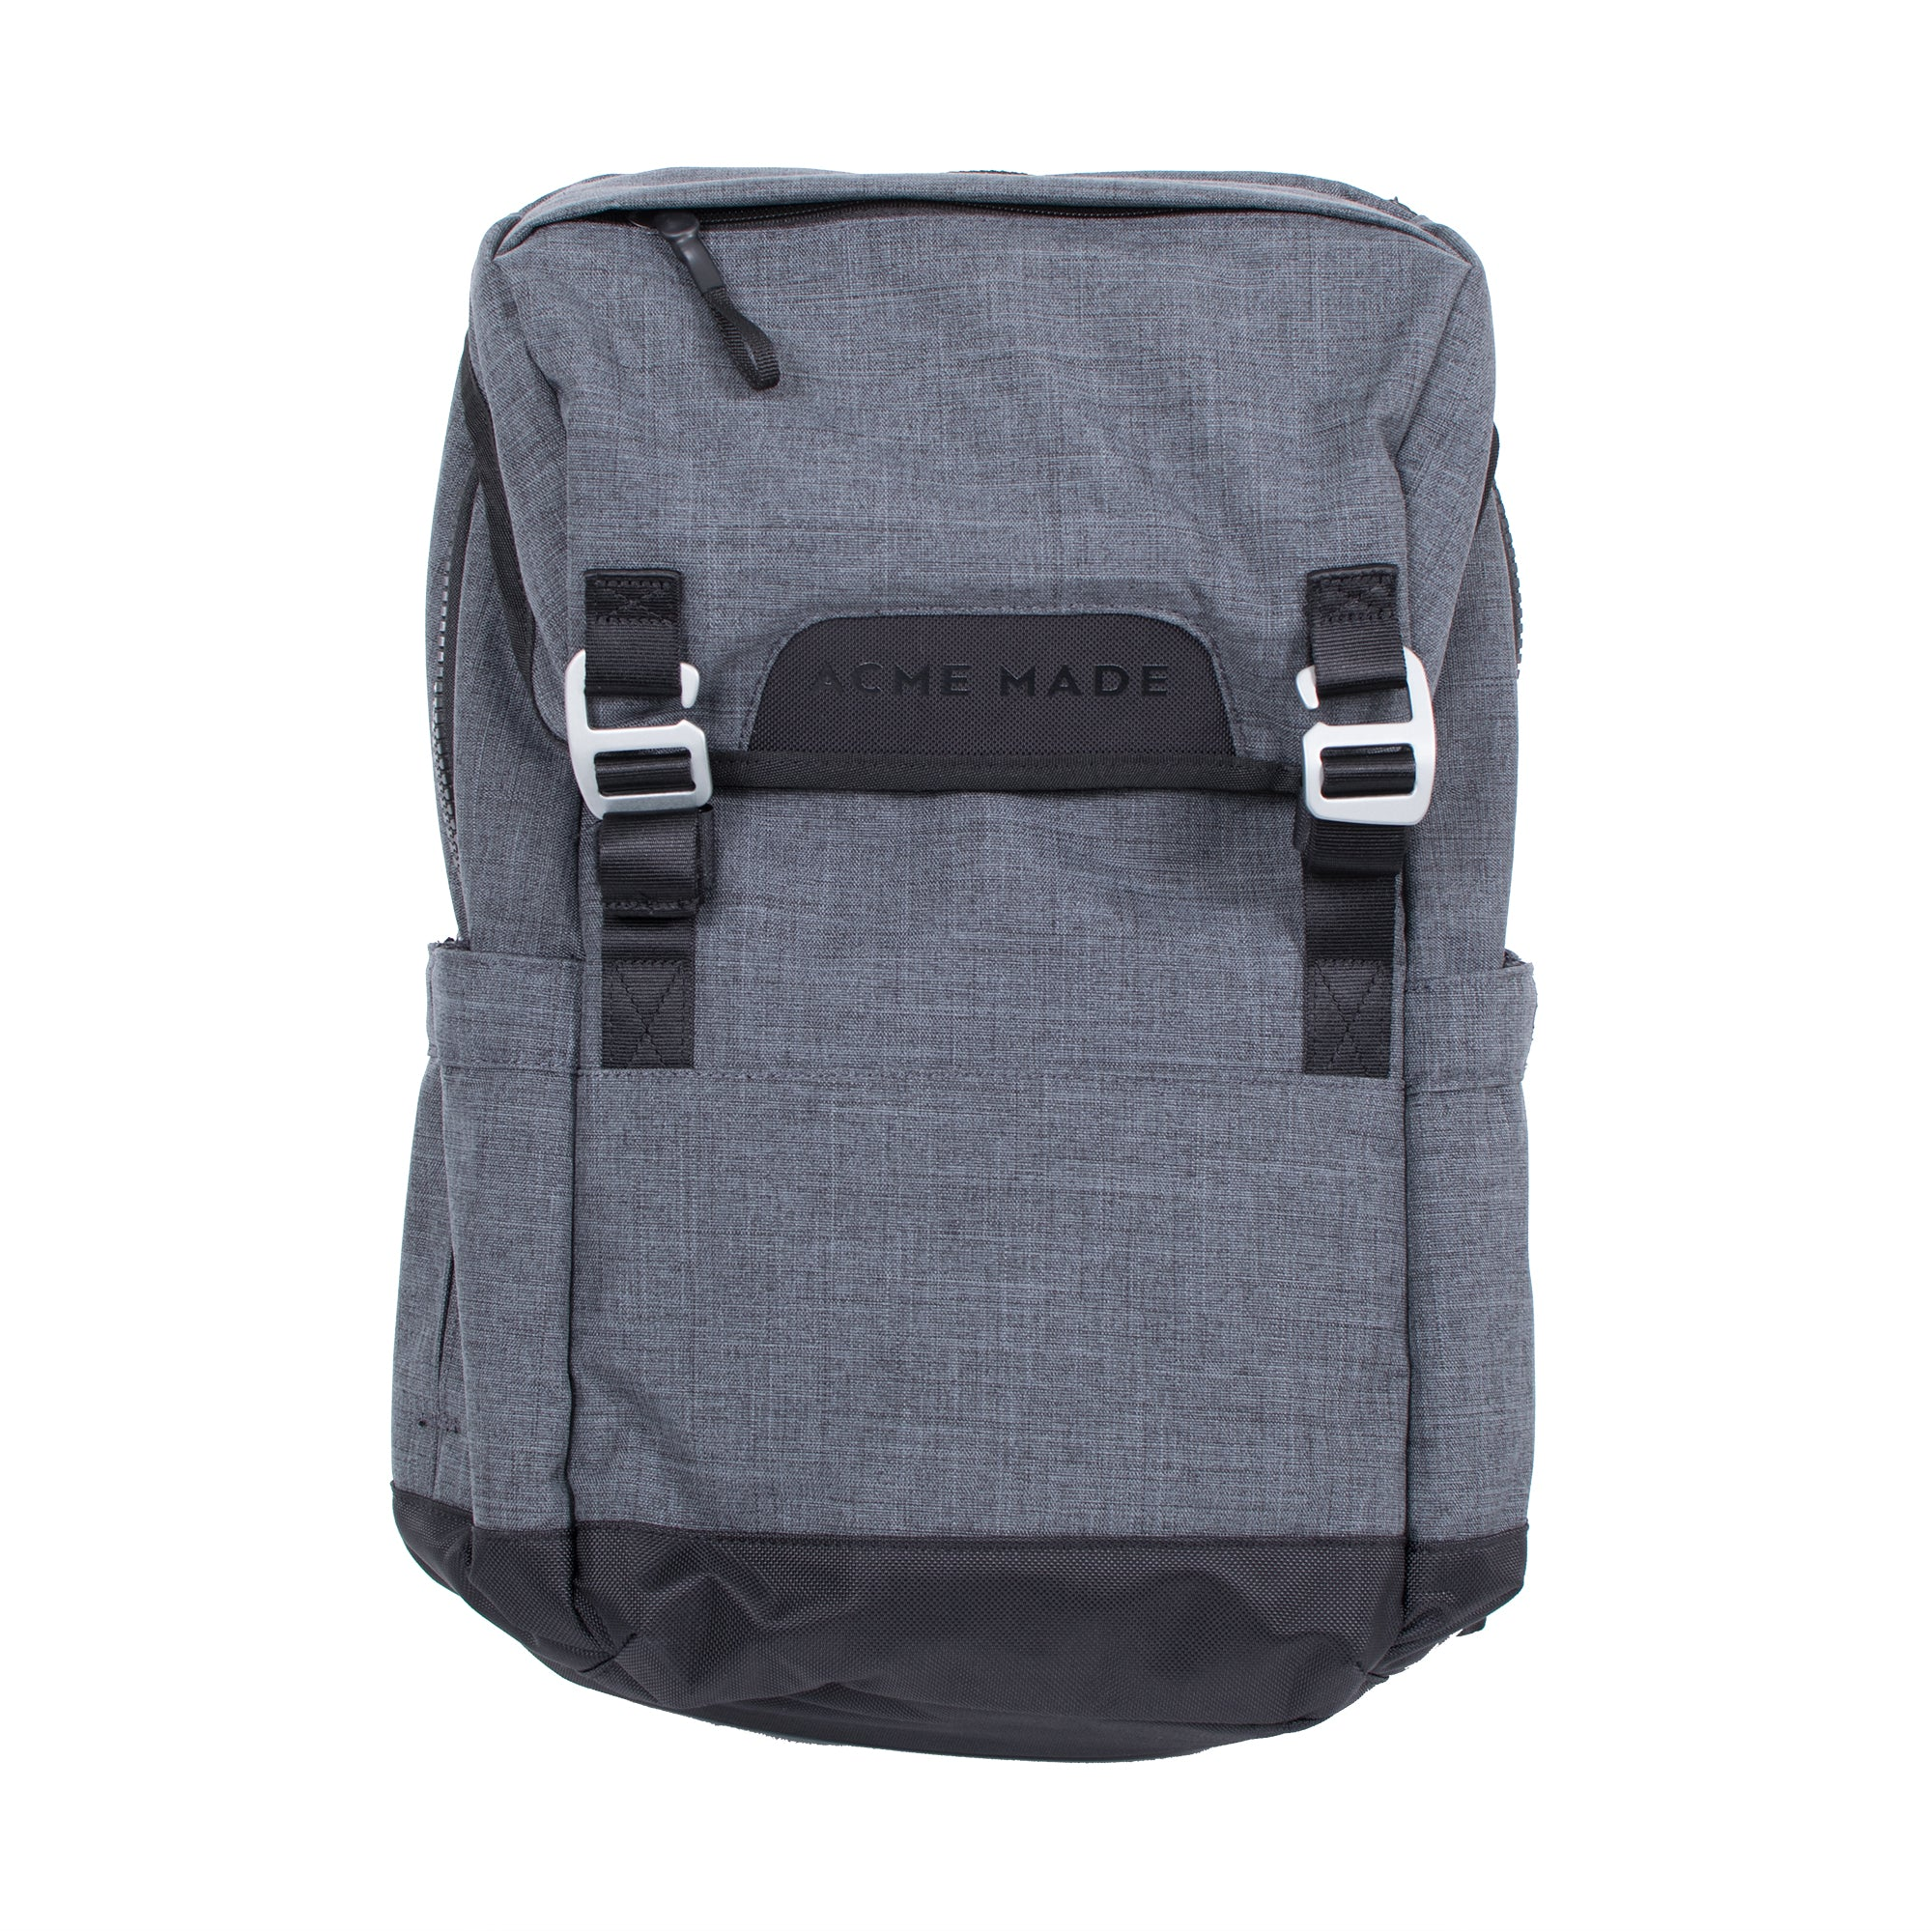 Divisadero Commuter Backpack ACME Made Front